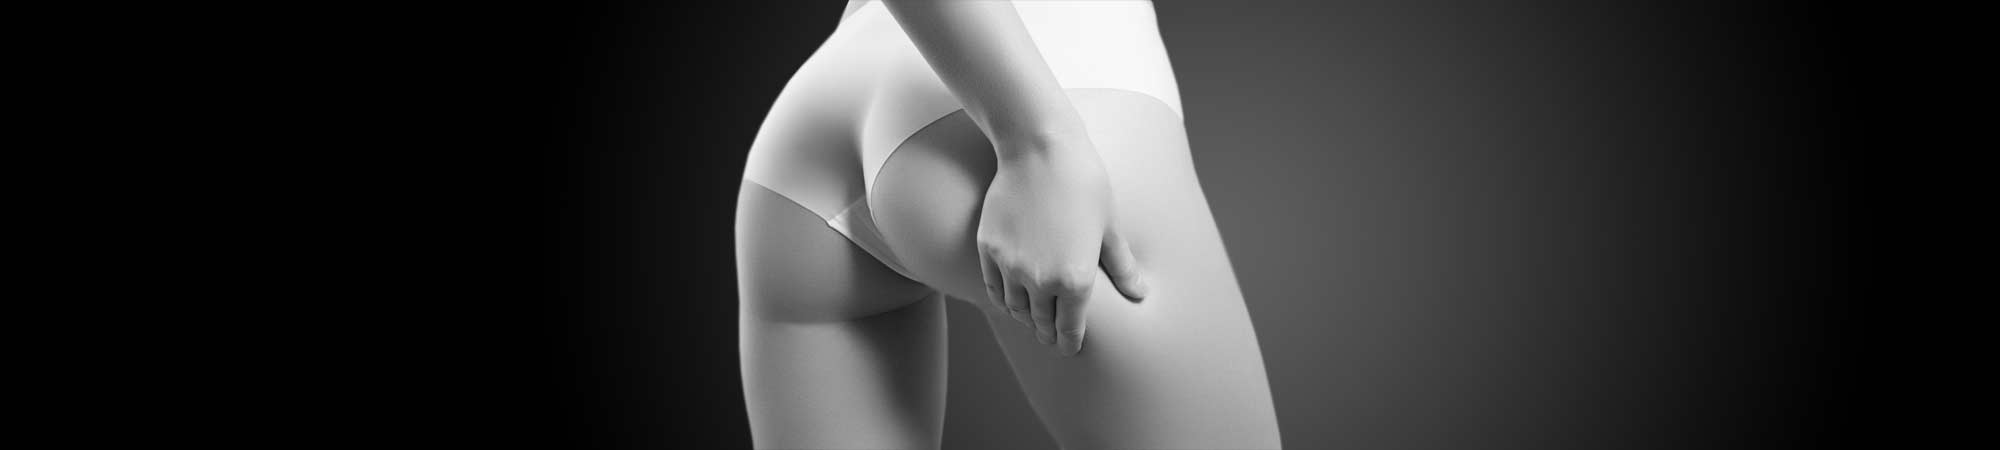 EMTONE cellulite Dr Leduc PAris